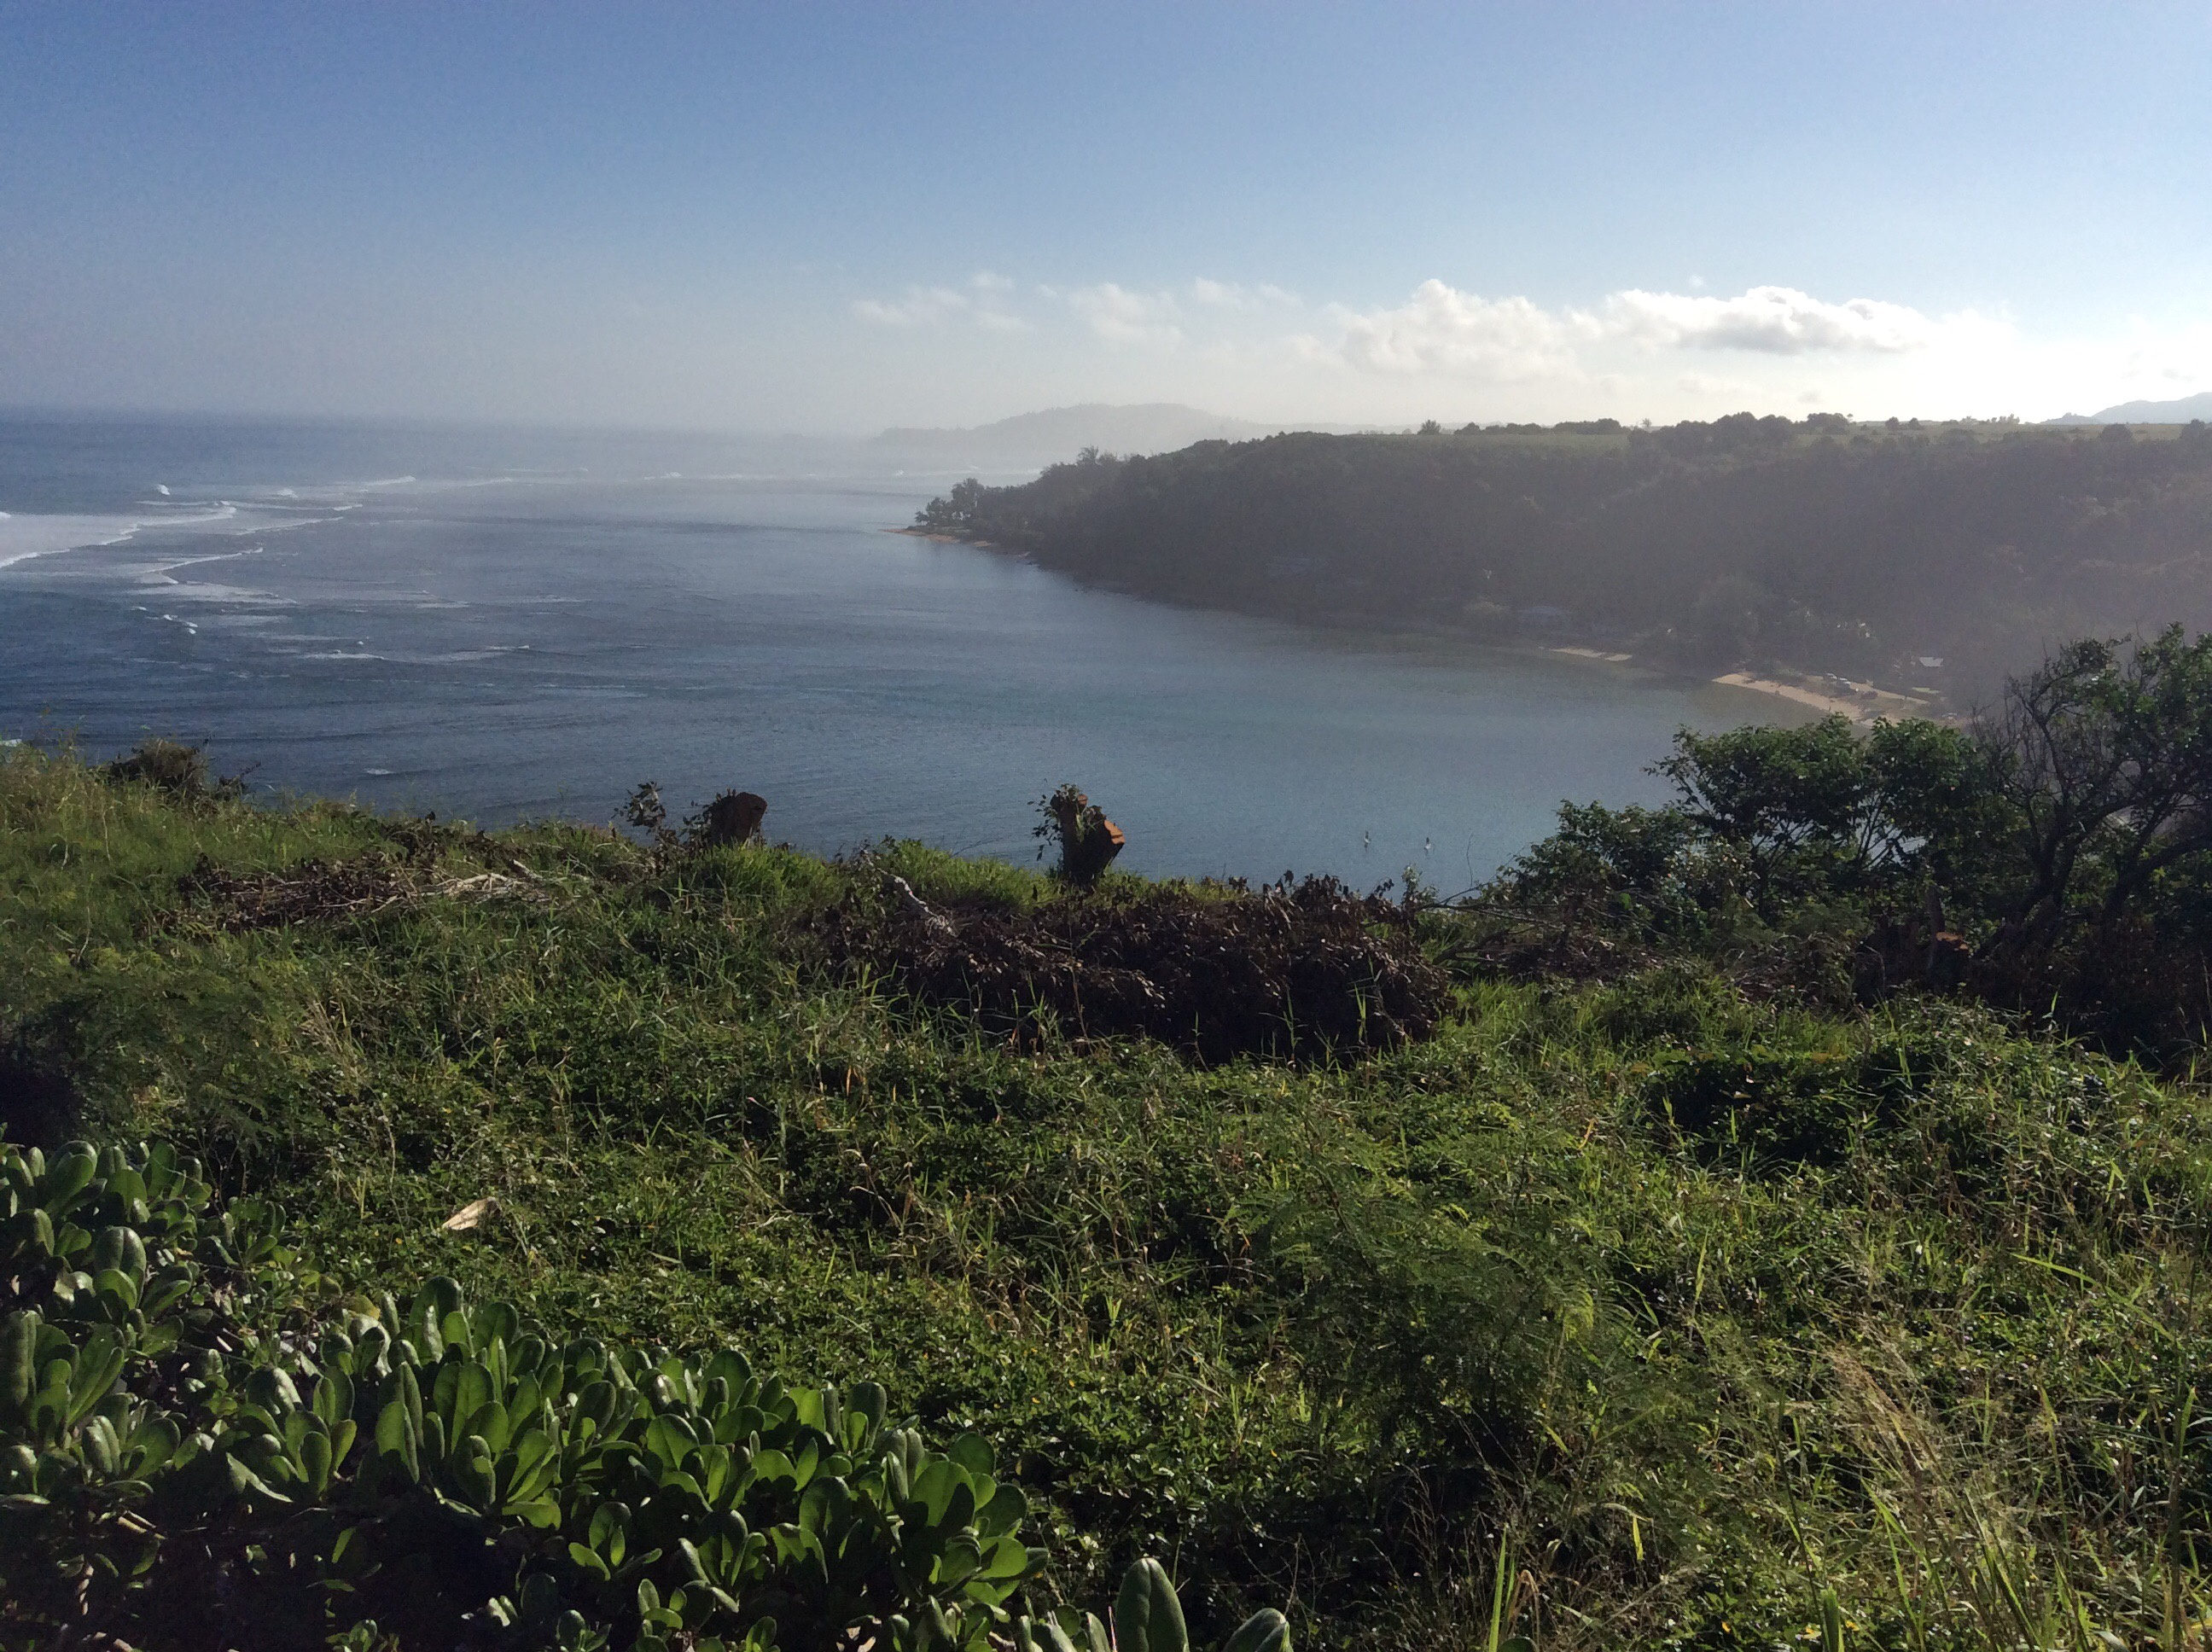 A view looking out into a blue sky, a few clouds, deep blue ocean with a couple of white waves, and green foliage in the foreground.